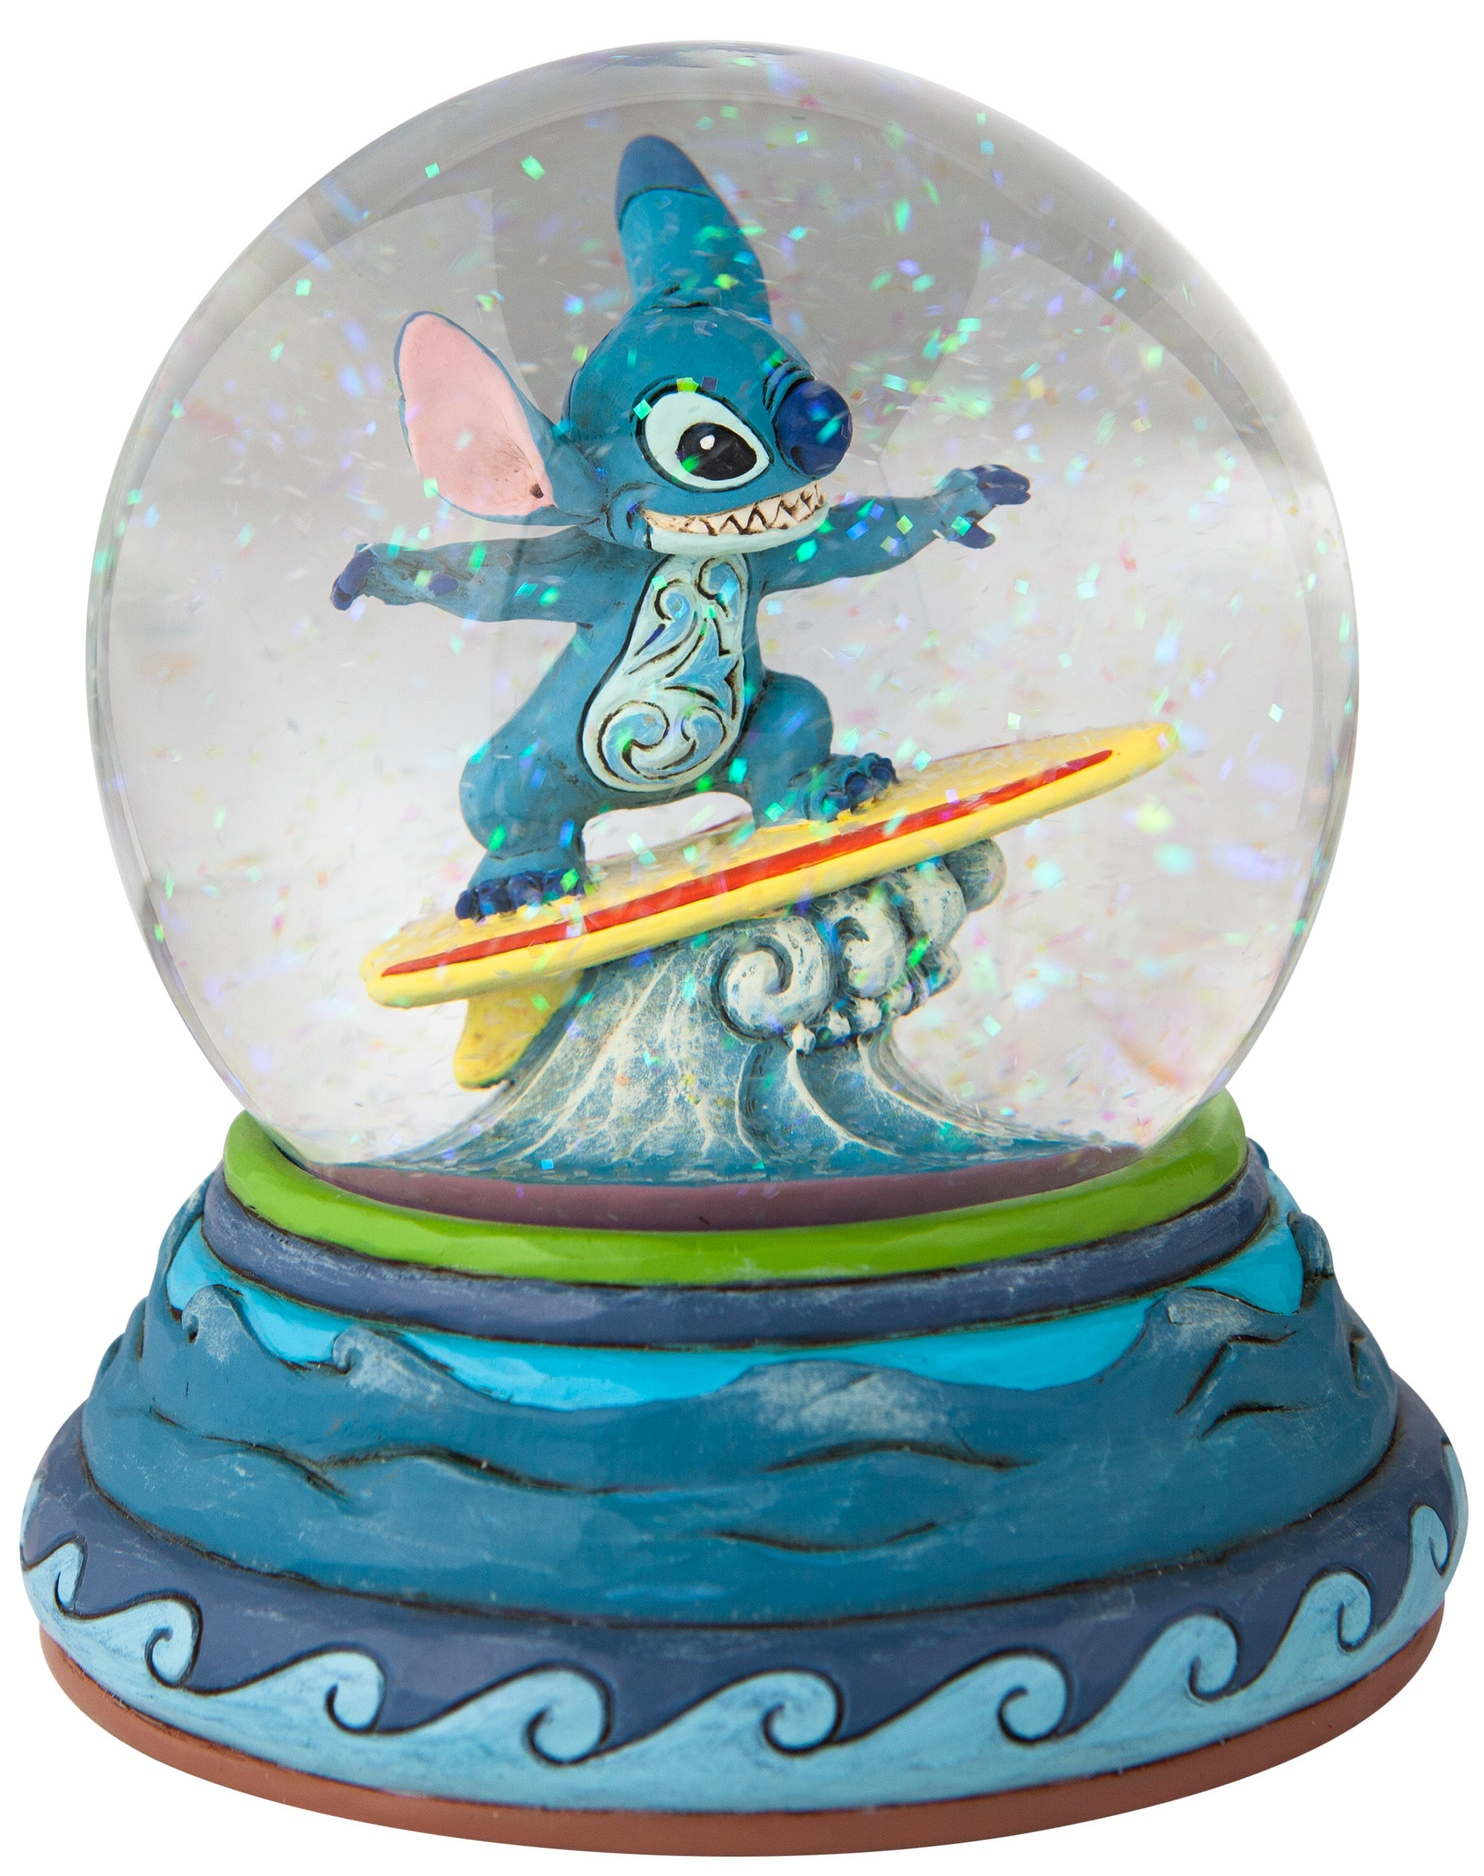 Jim Shore Disney 6007085N Stitch Waterball 100mm